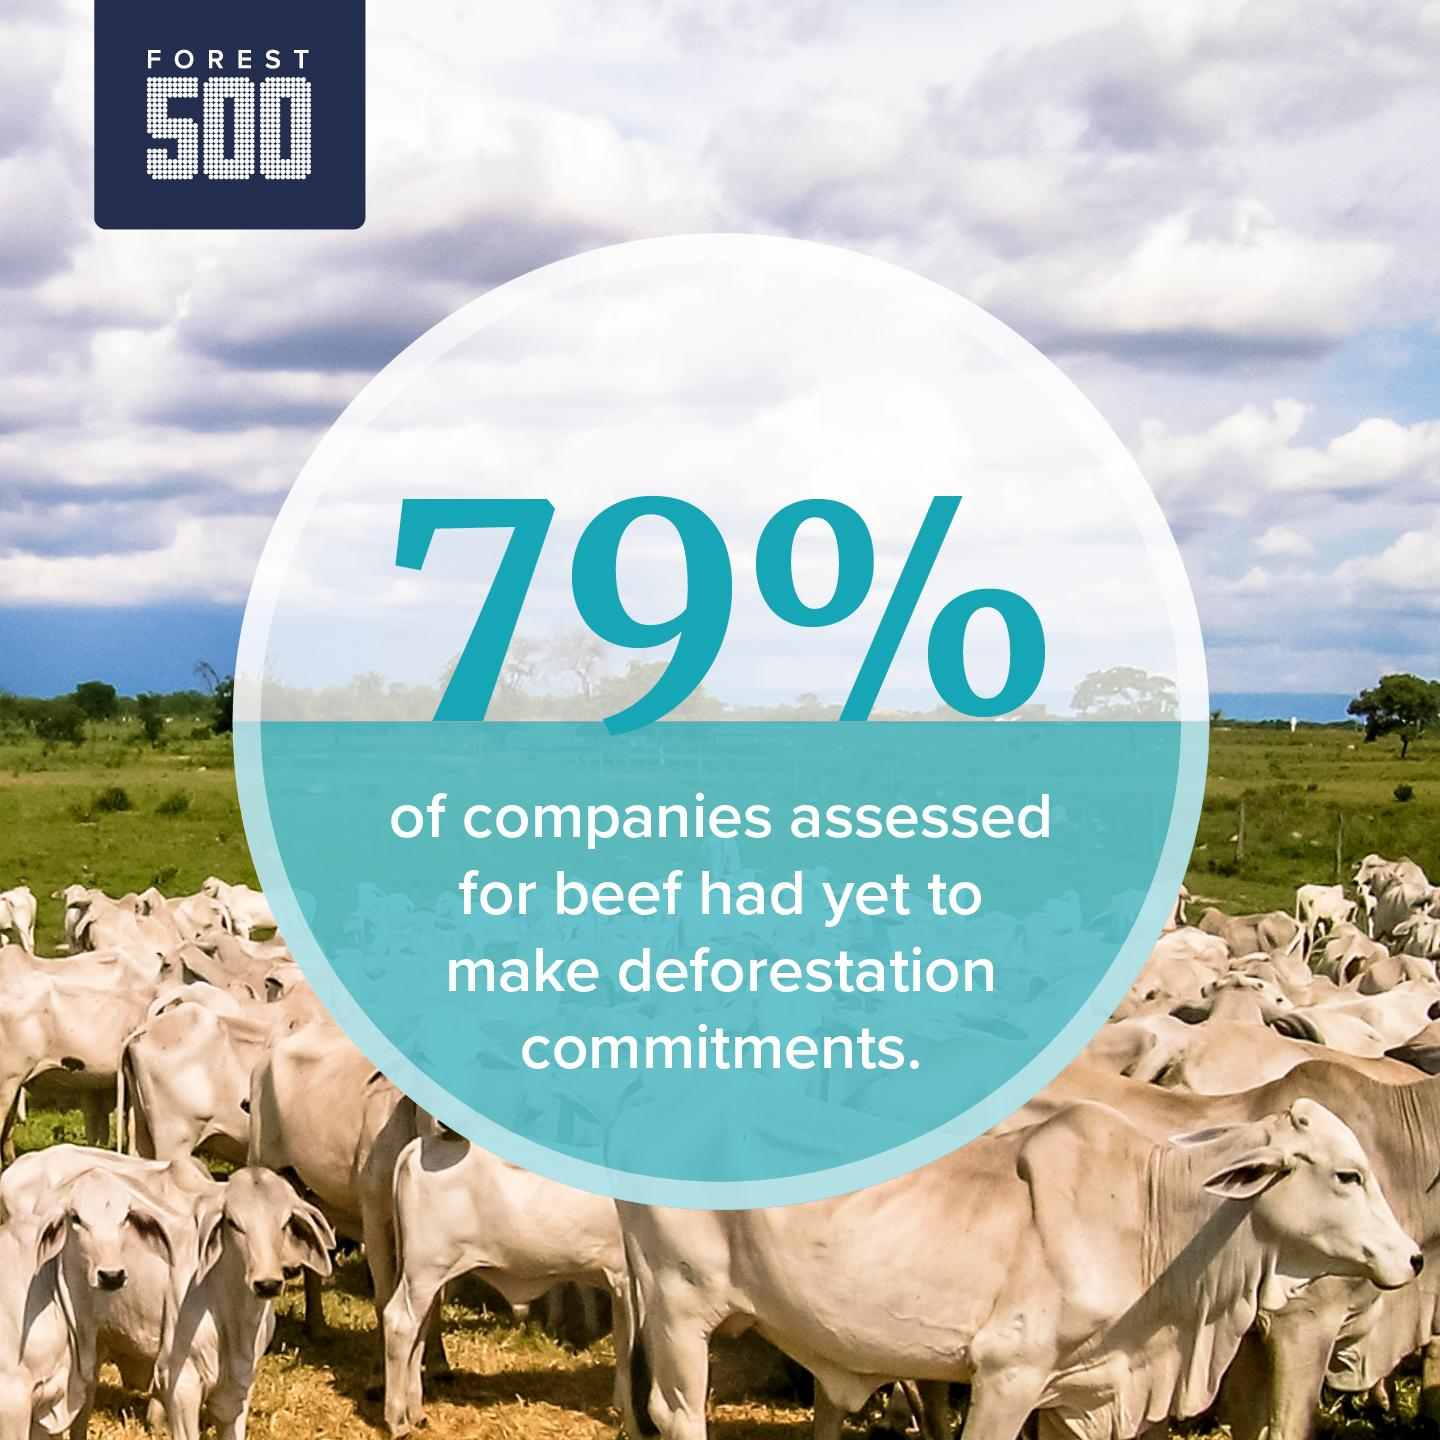 Image shows % of companies without a commitment for beef